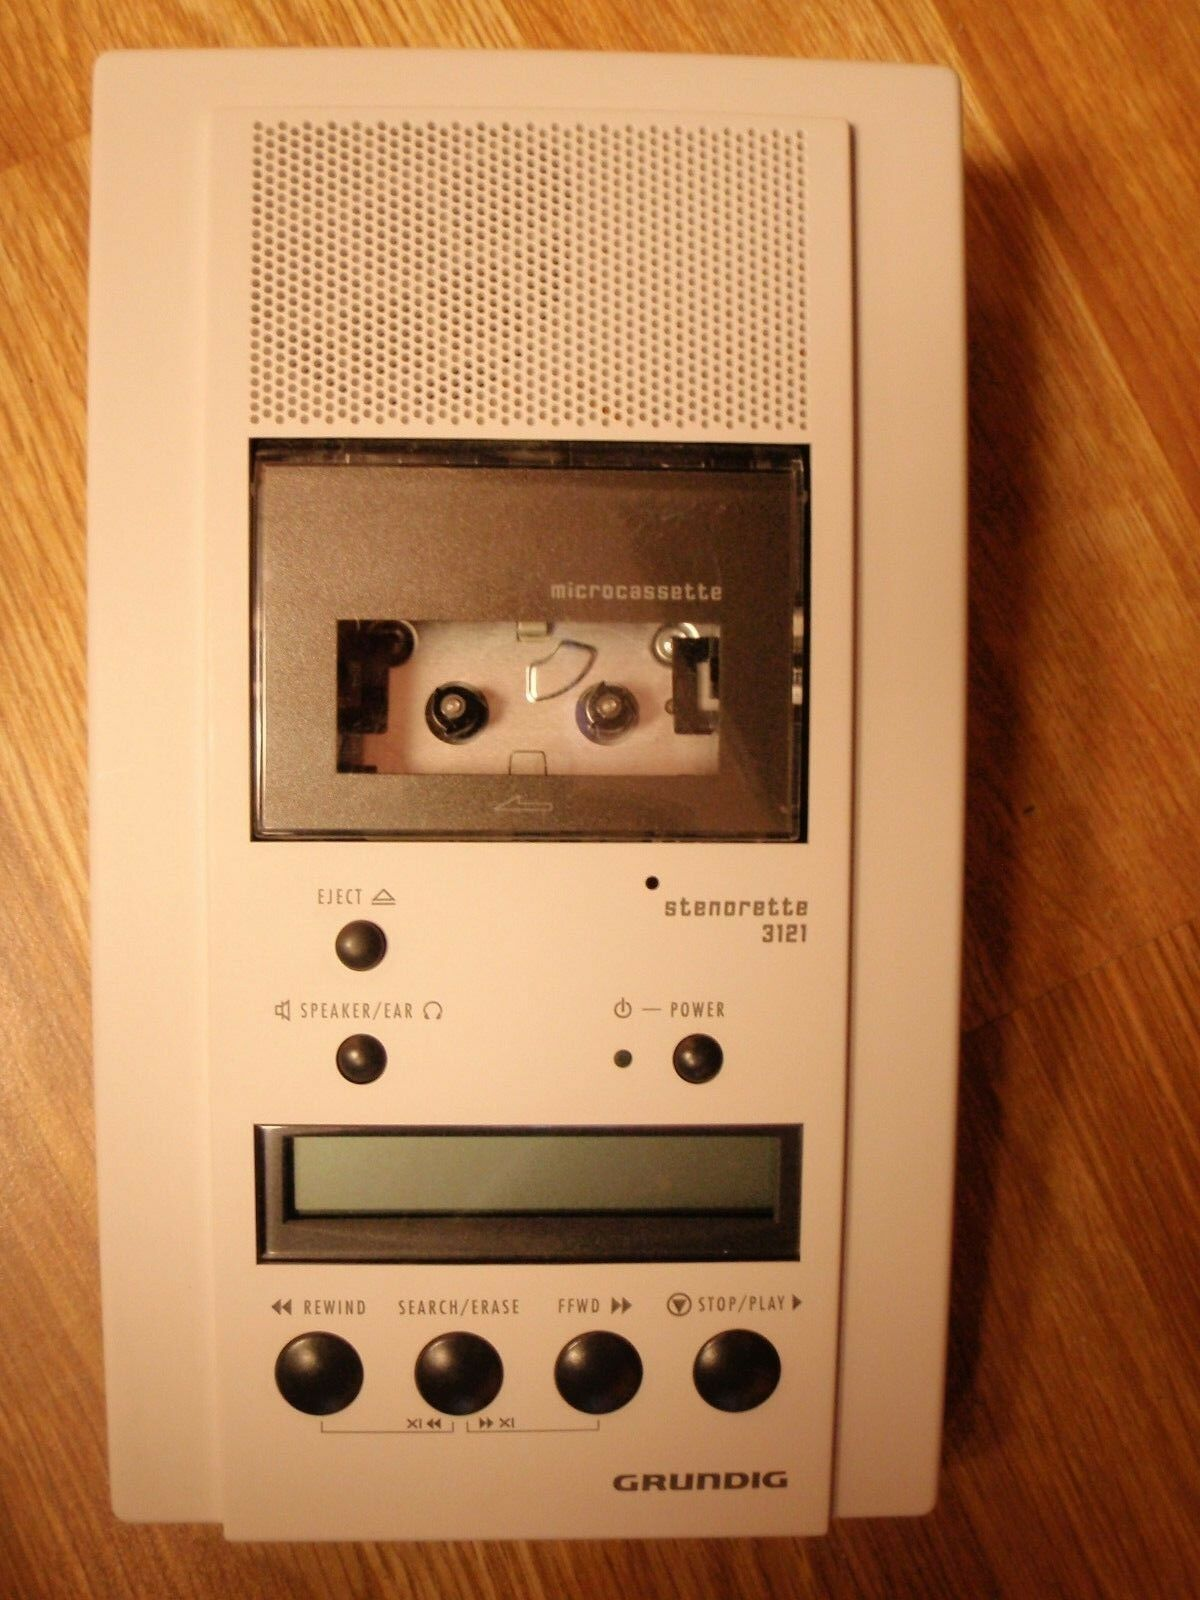 Grundig 3121 microcassette transcriber with AC, foot pedal, headset and warranty